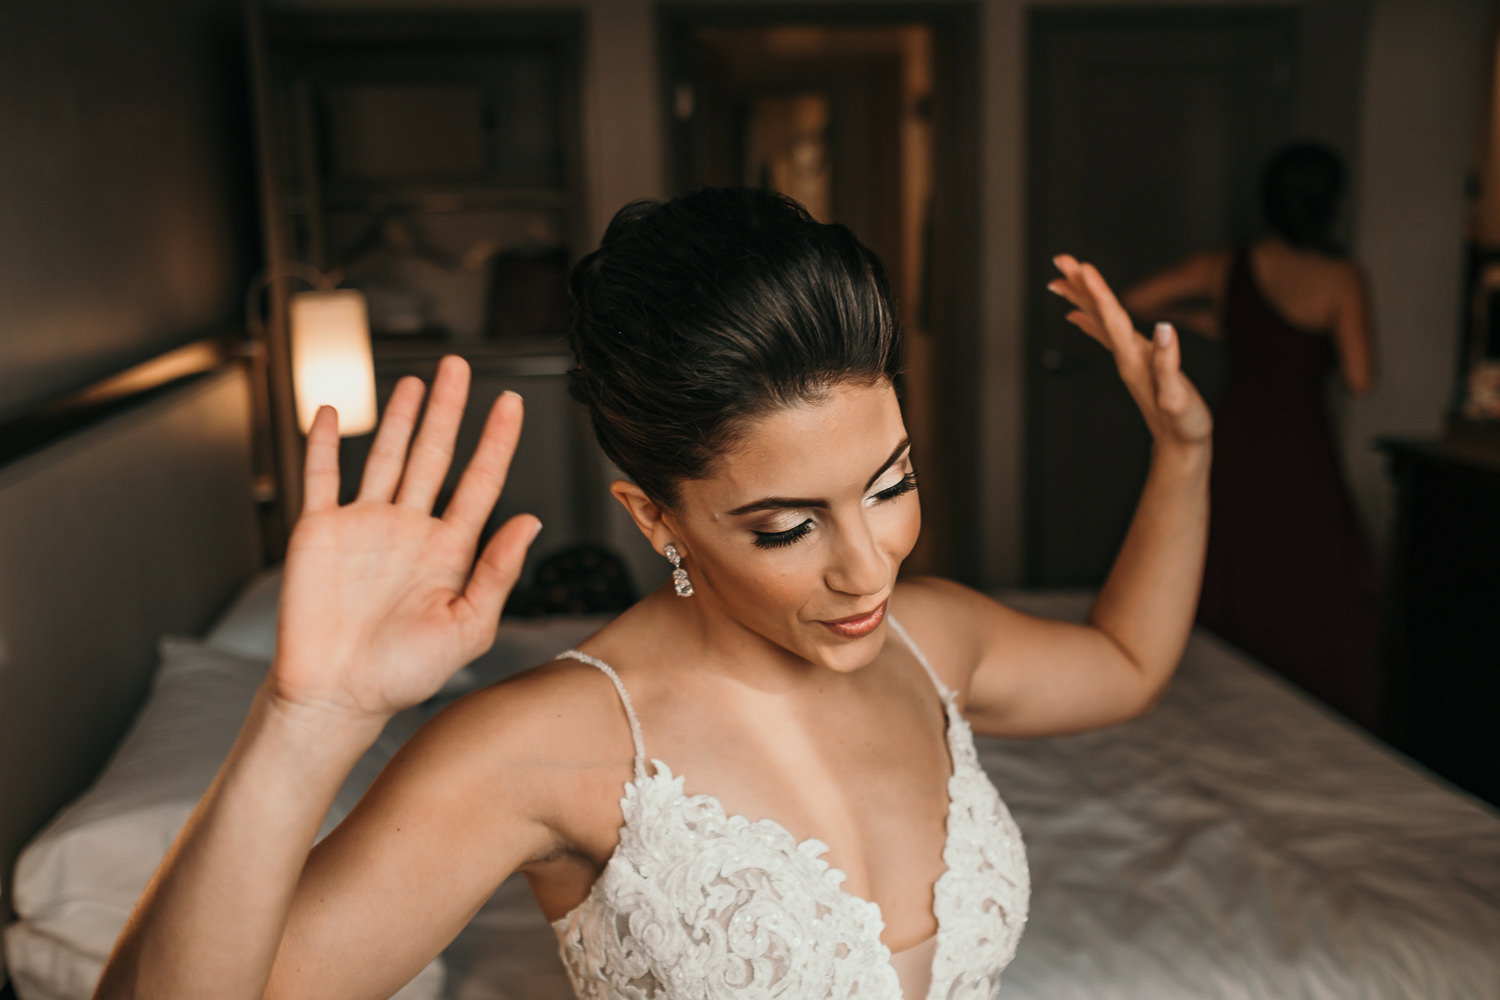 bride celebrating with her hands up